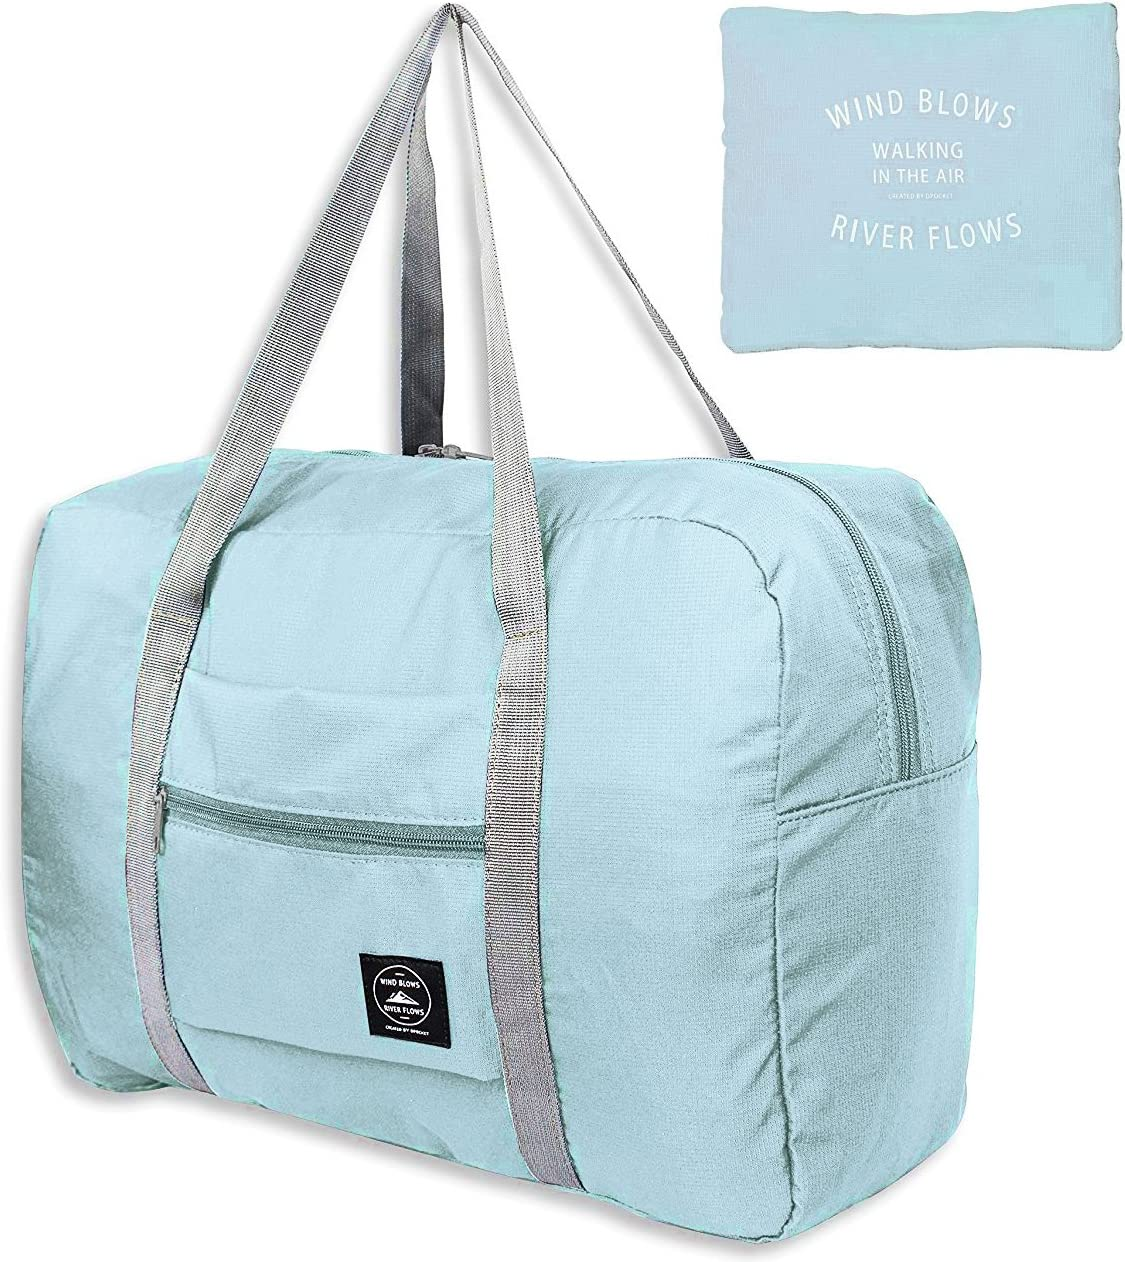 Unova Folding Travel Duffel Bag Packable Light Nylon Water Resistant Tote Weekend Getaway Overnight Carry-on Shoulder (Mint Green)